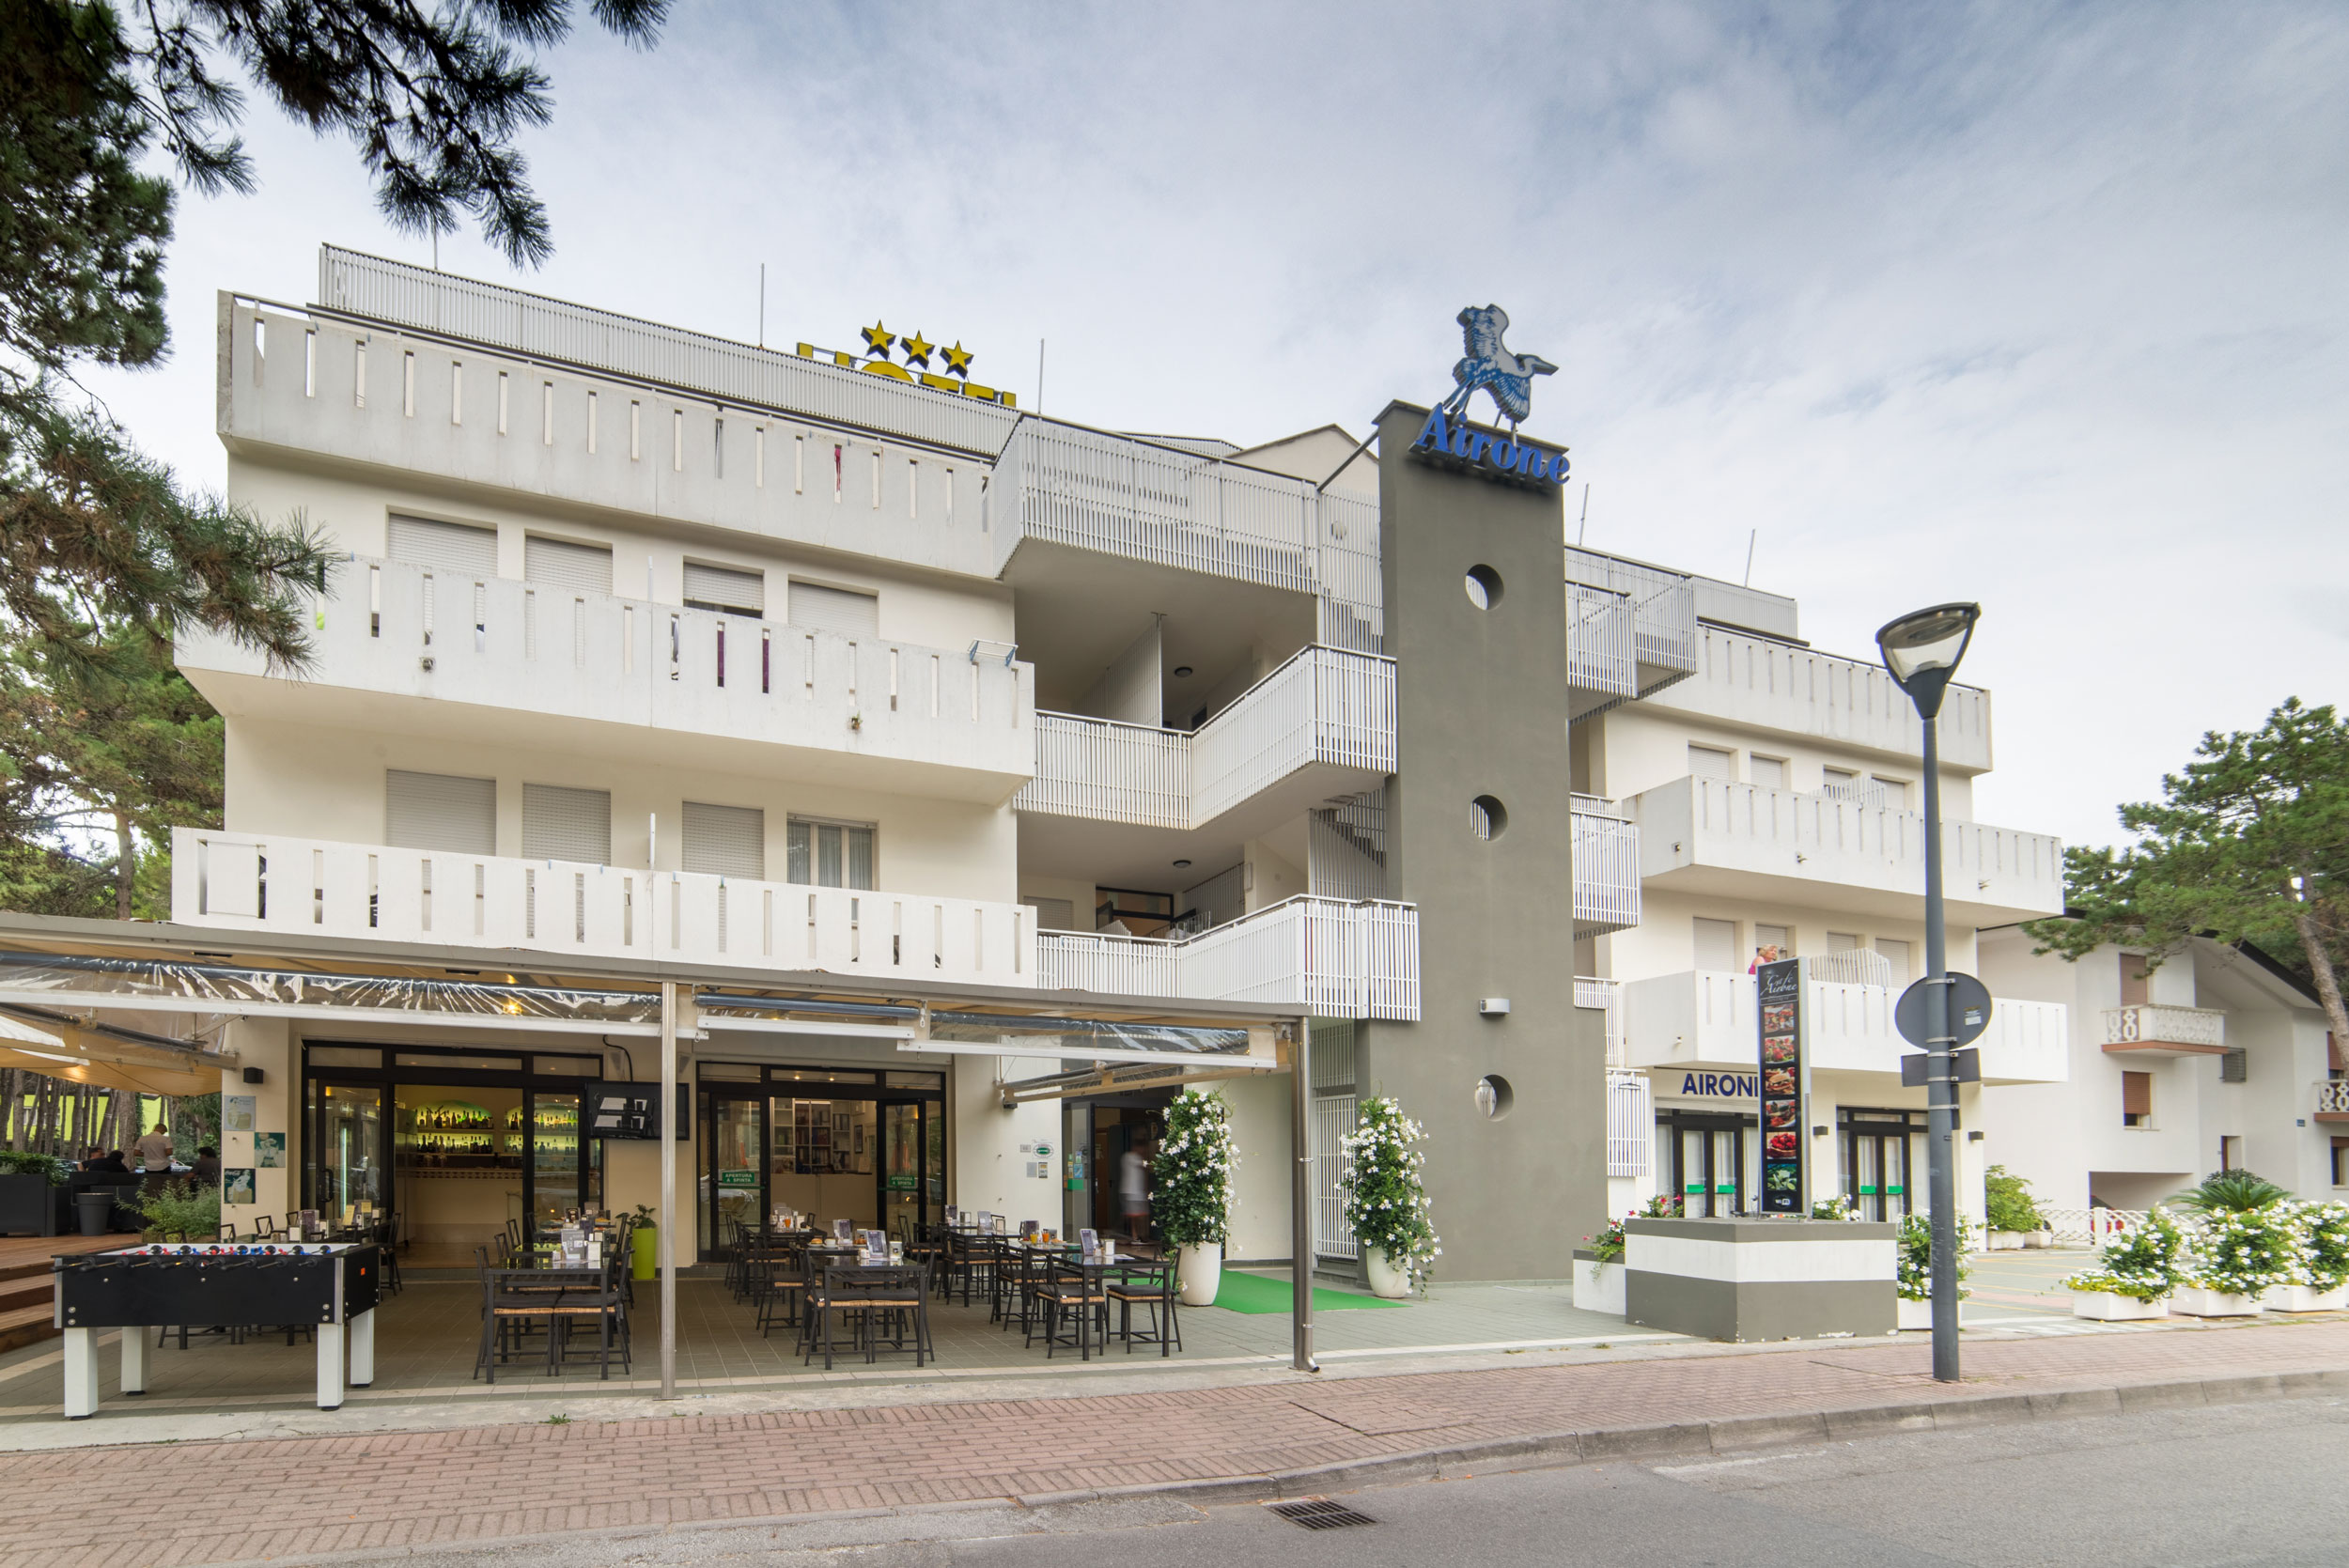 A large building at Hotel Airone Bibione.